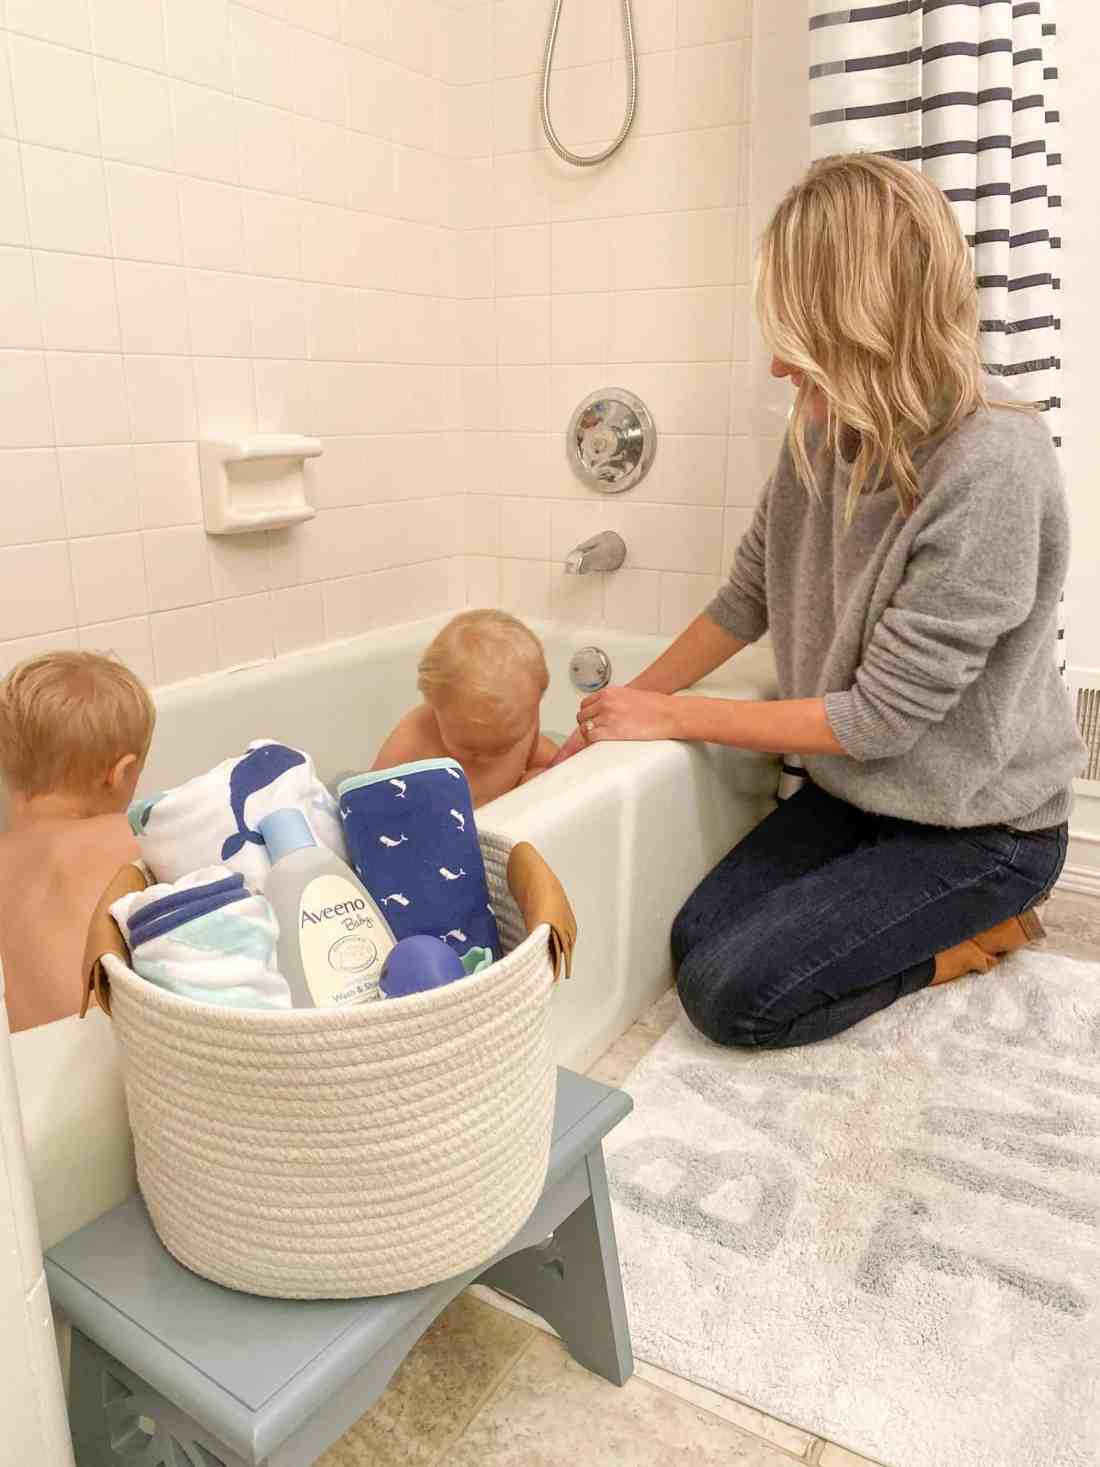 Bath and Bedtime Routine with Aveeno® Baby featured by top Michigan lifestyle blogger, The House of Navy: mom with sons at bathtime | Aveeno Baby by popular Michigan motherhood blog, House of Navy: image of a two young boys sitting in a bathtub next to a white woven basket filled with a blue and white stripe hooded towel, whale print wash cloth, and Aveeno Baby wash and shampoo.